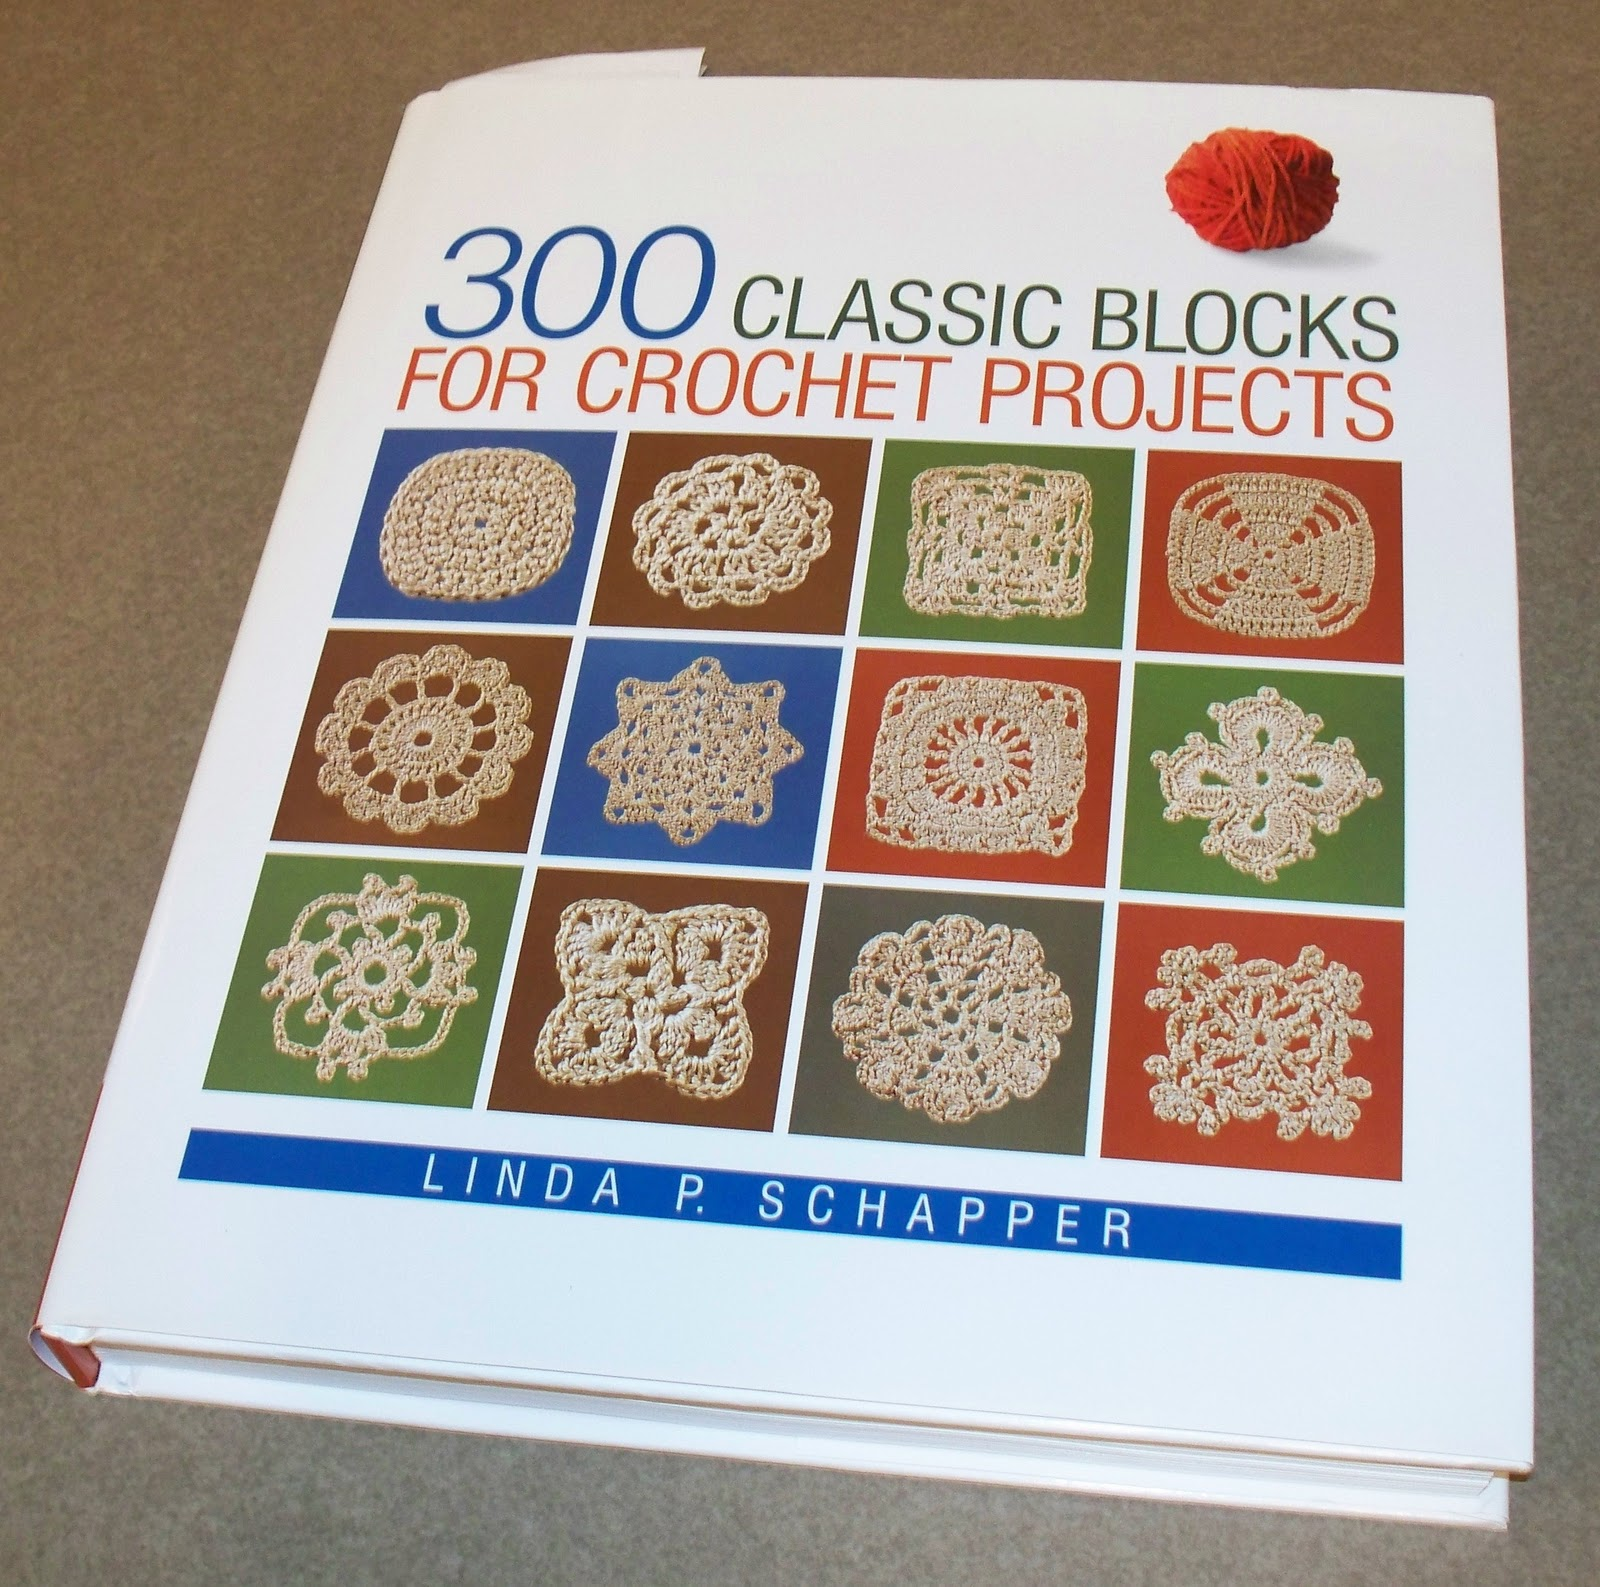 Crocheting Books : ... thought so too! So much crochet knowledge contained in these books